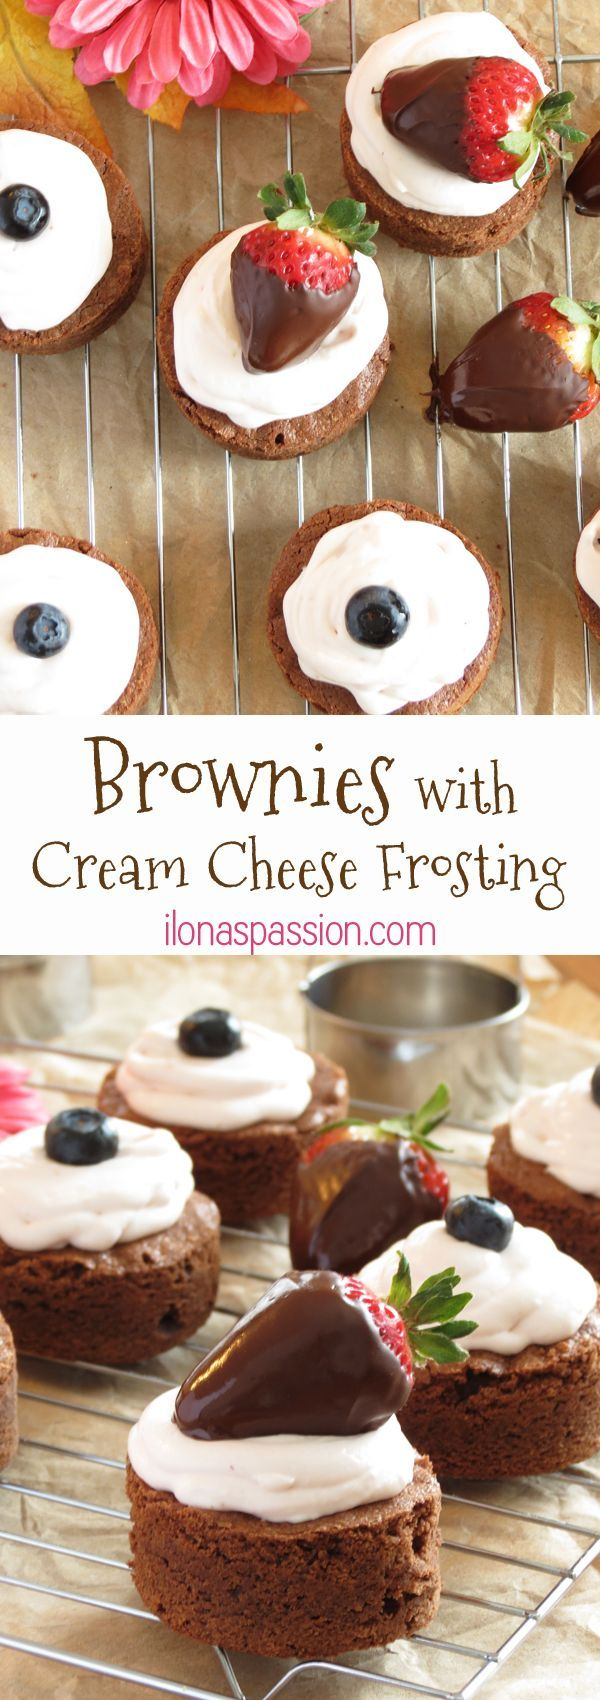 The Best Homemade Brownies with Strawberry Cream Cheese Frosting by http://ilonaspassion.com